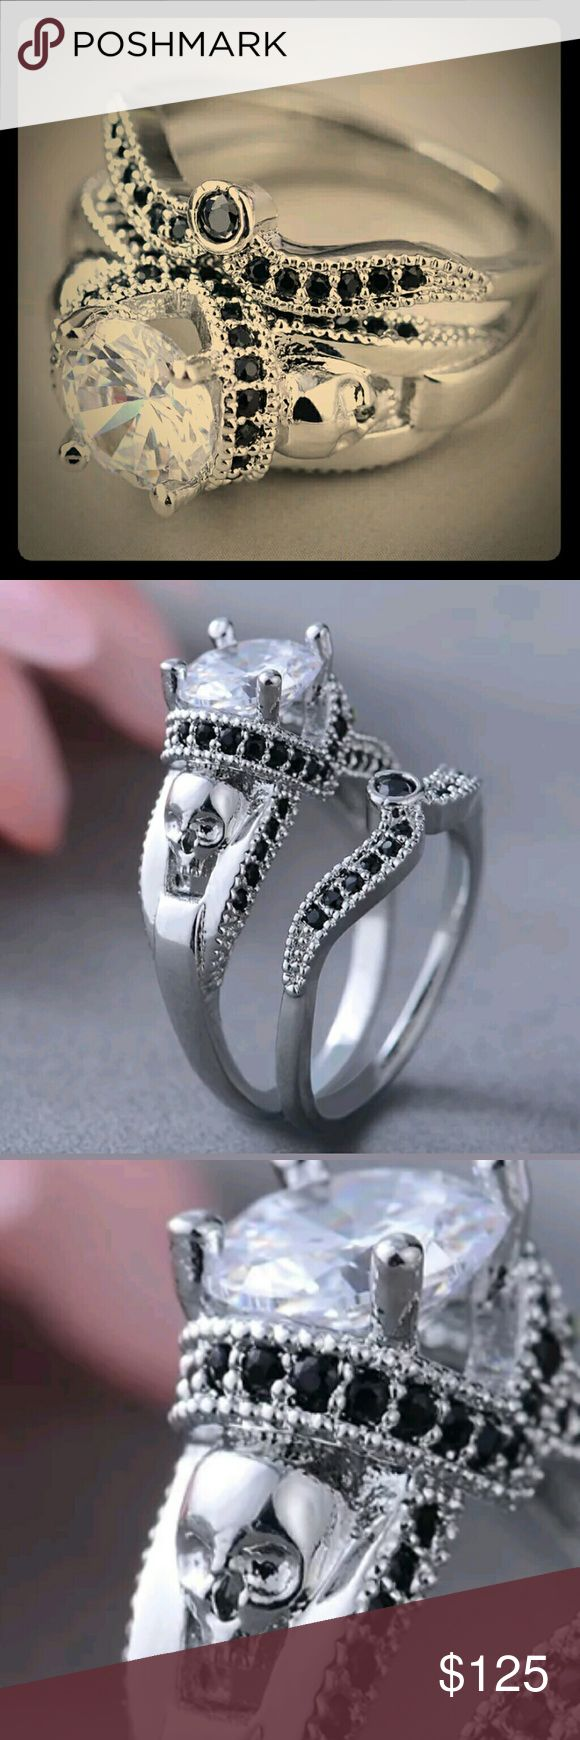 Best Skull Wedding Ring Ideas Only On Pinterest Mens Skull